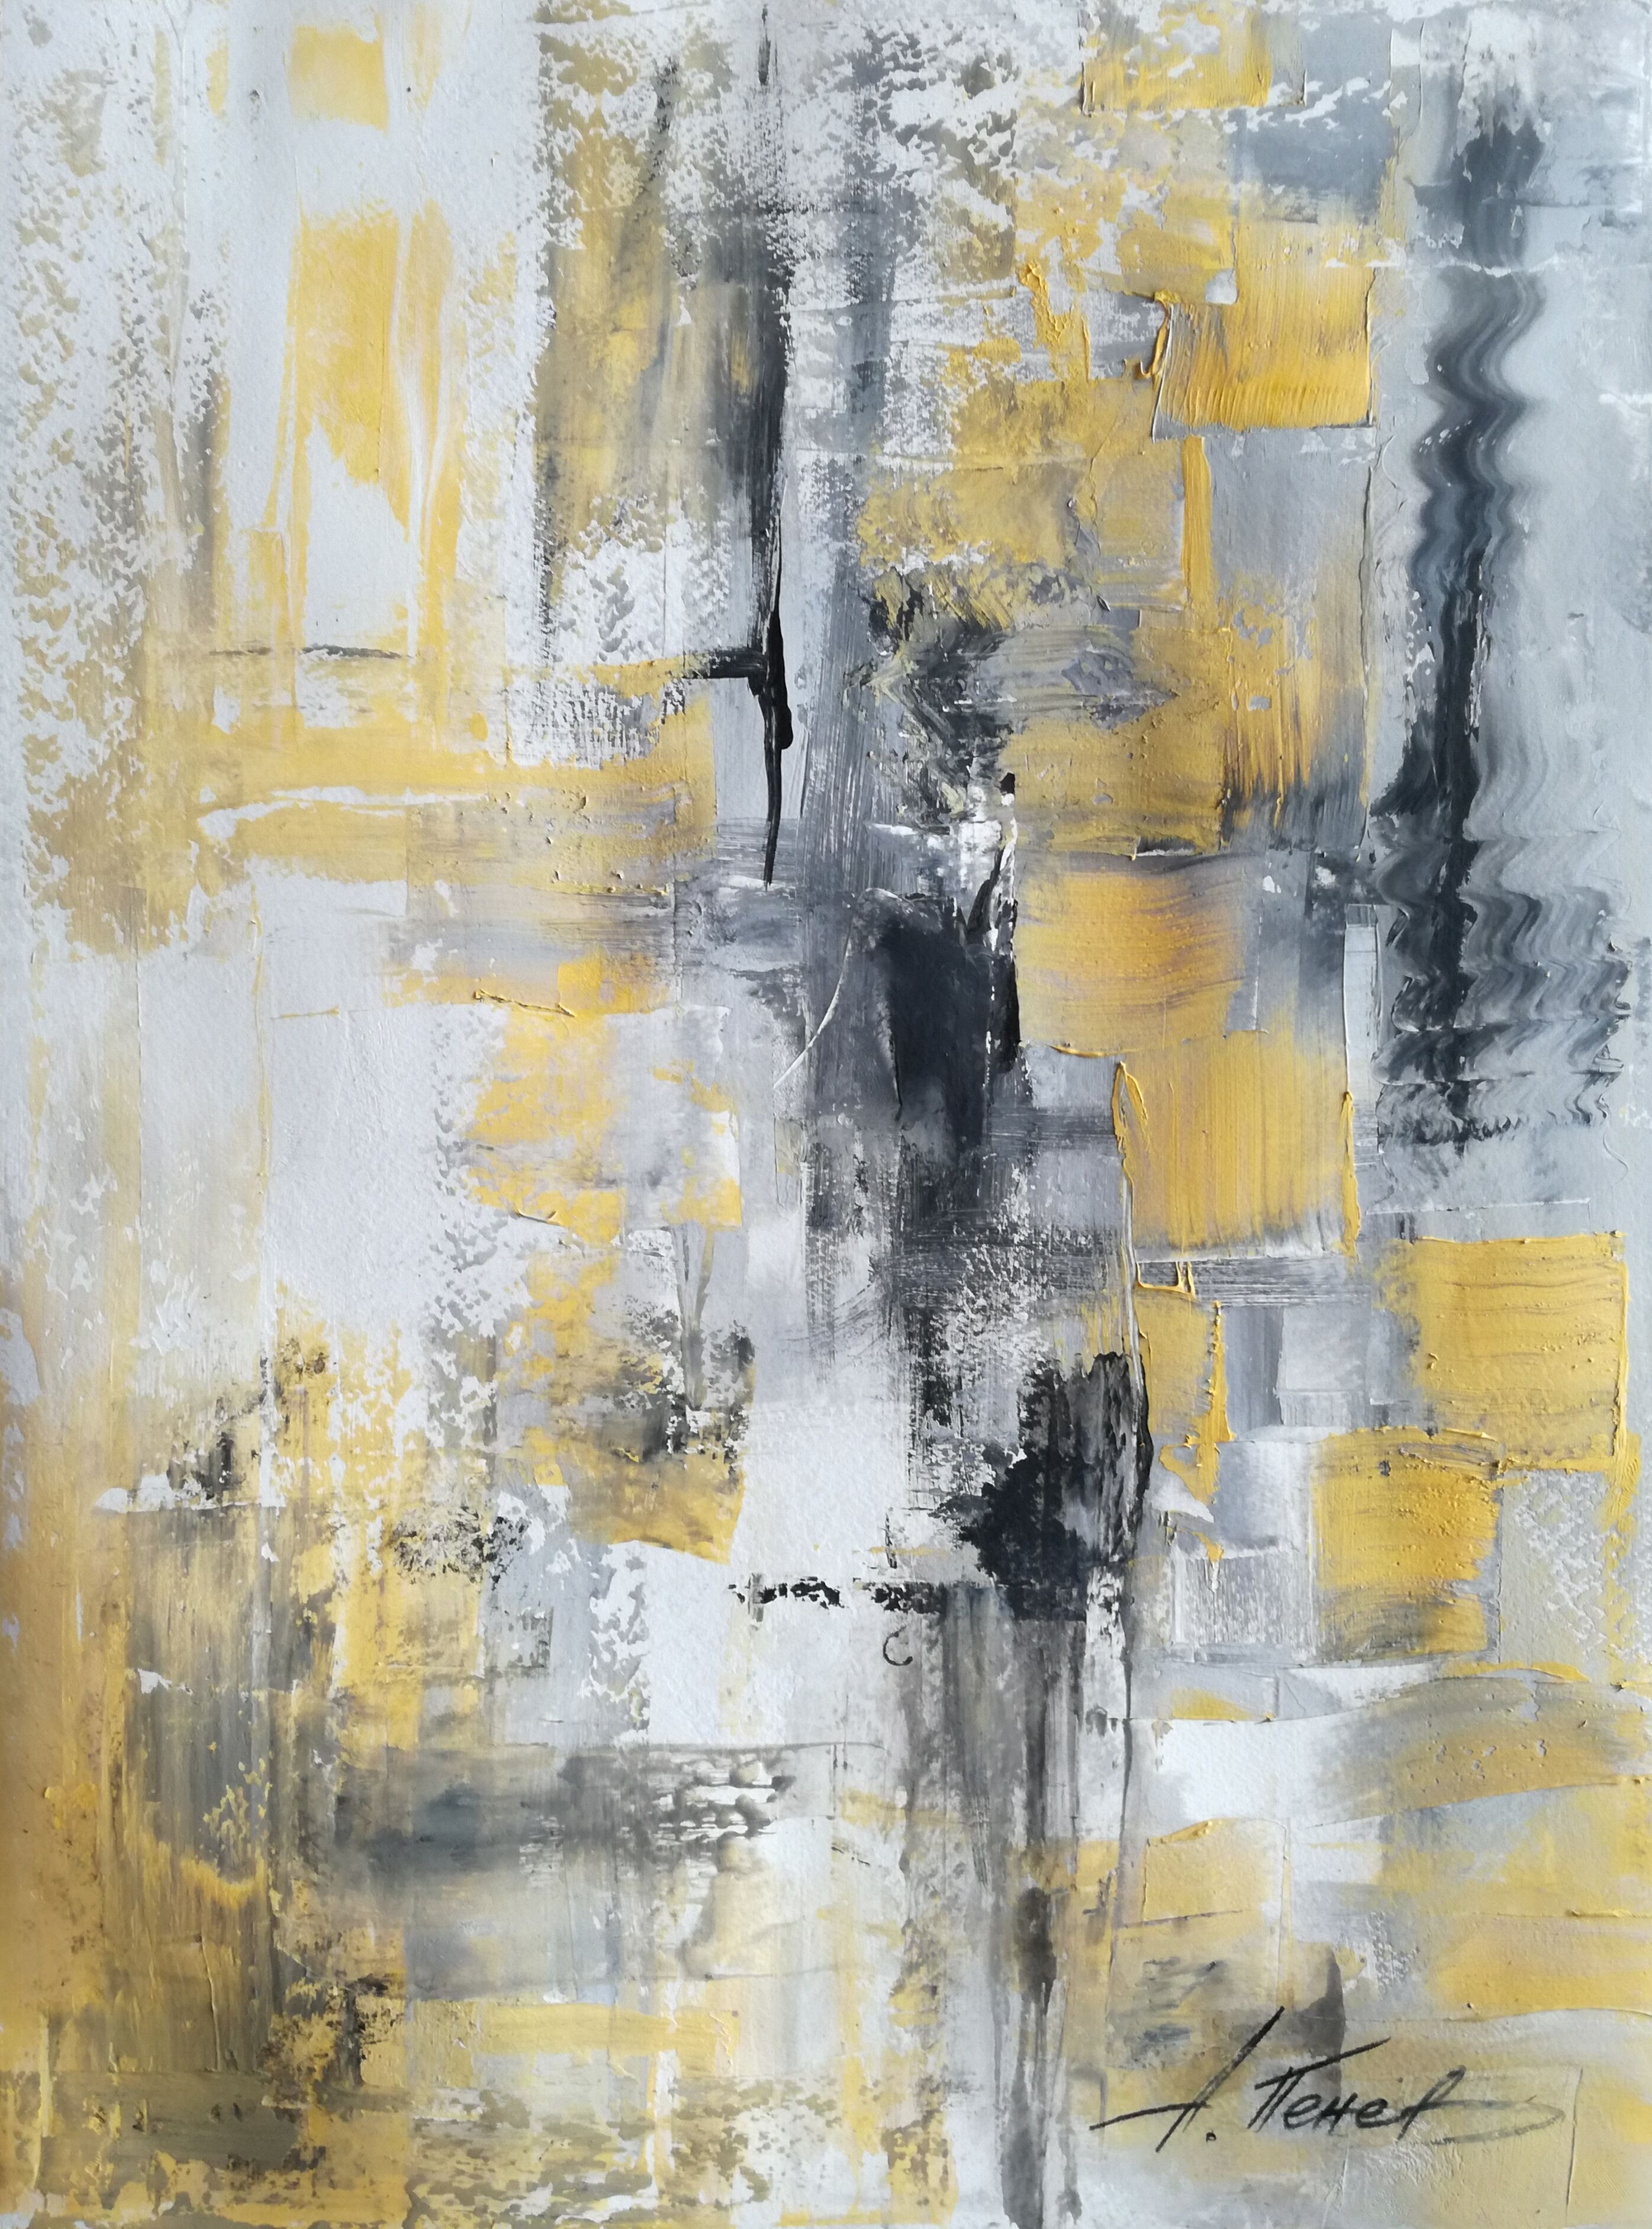 Black-white-yellow Texture Abstract Painting .penev